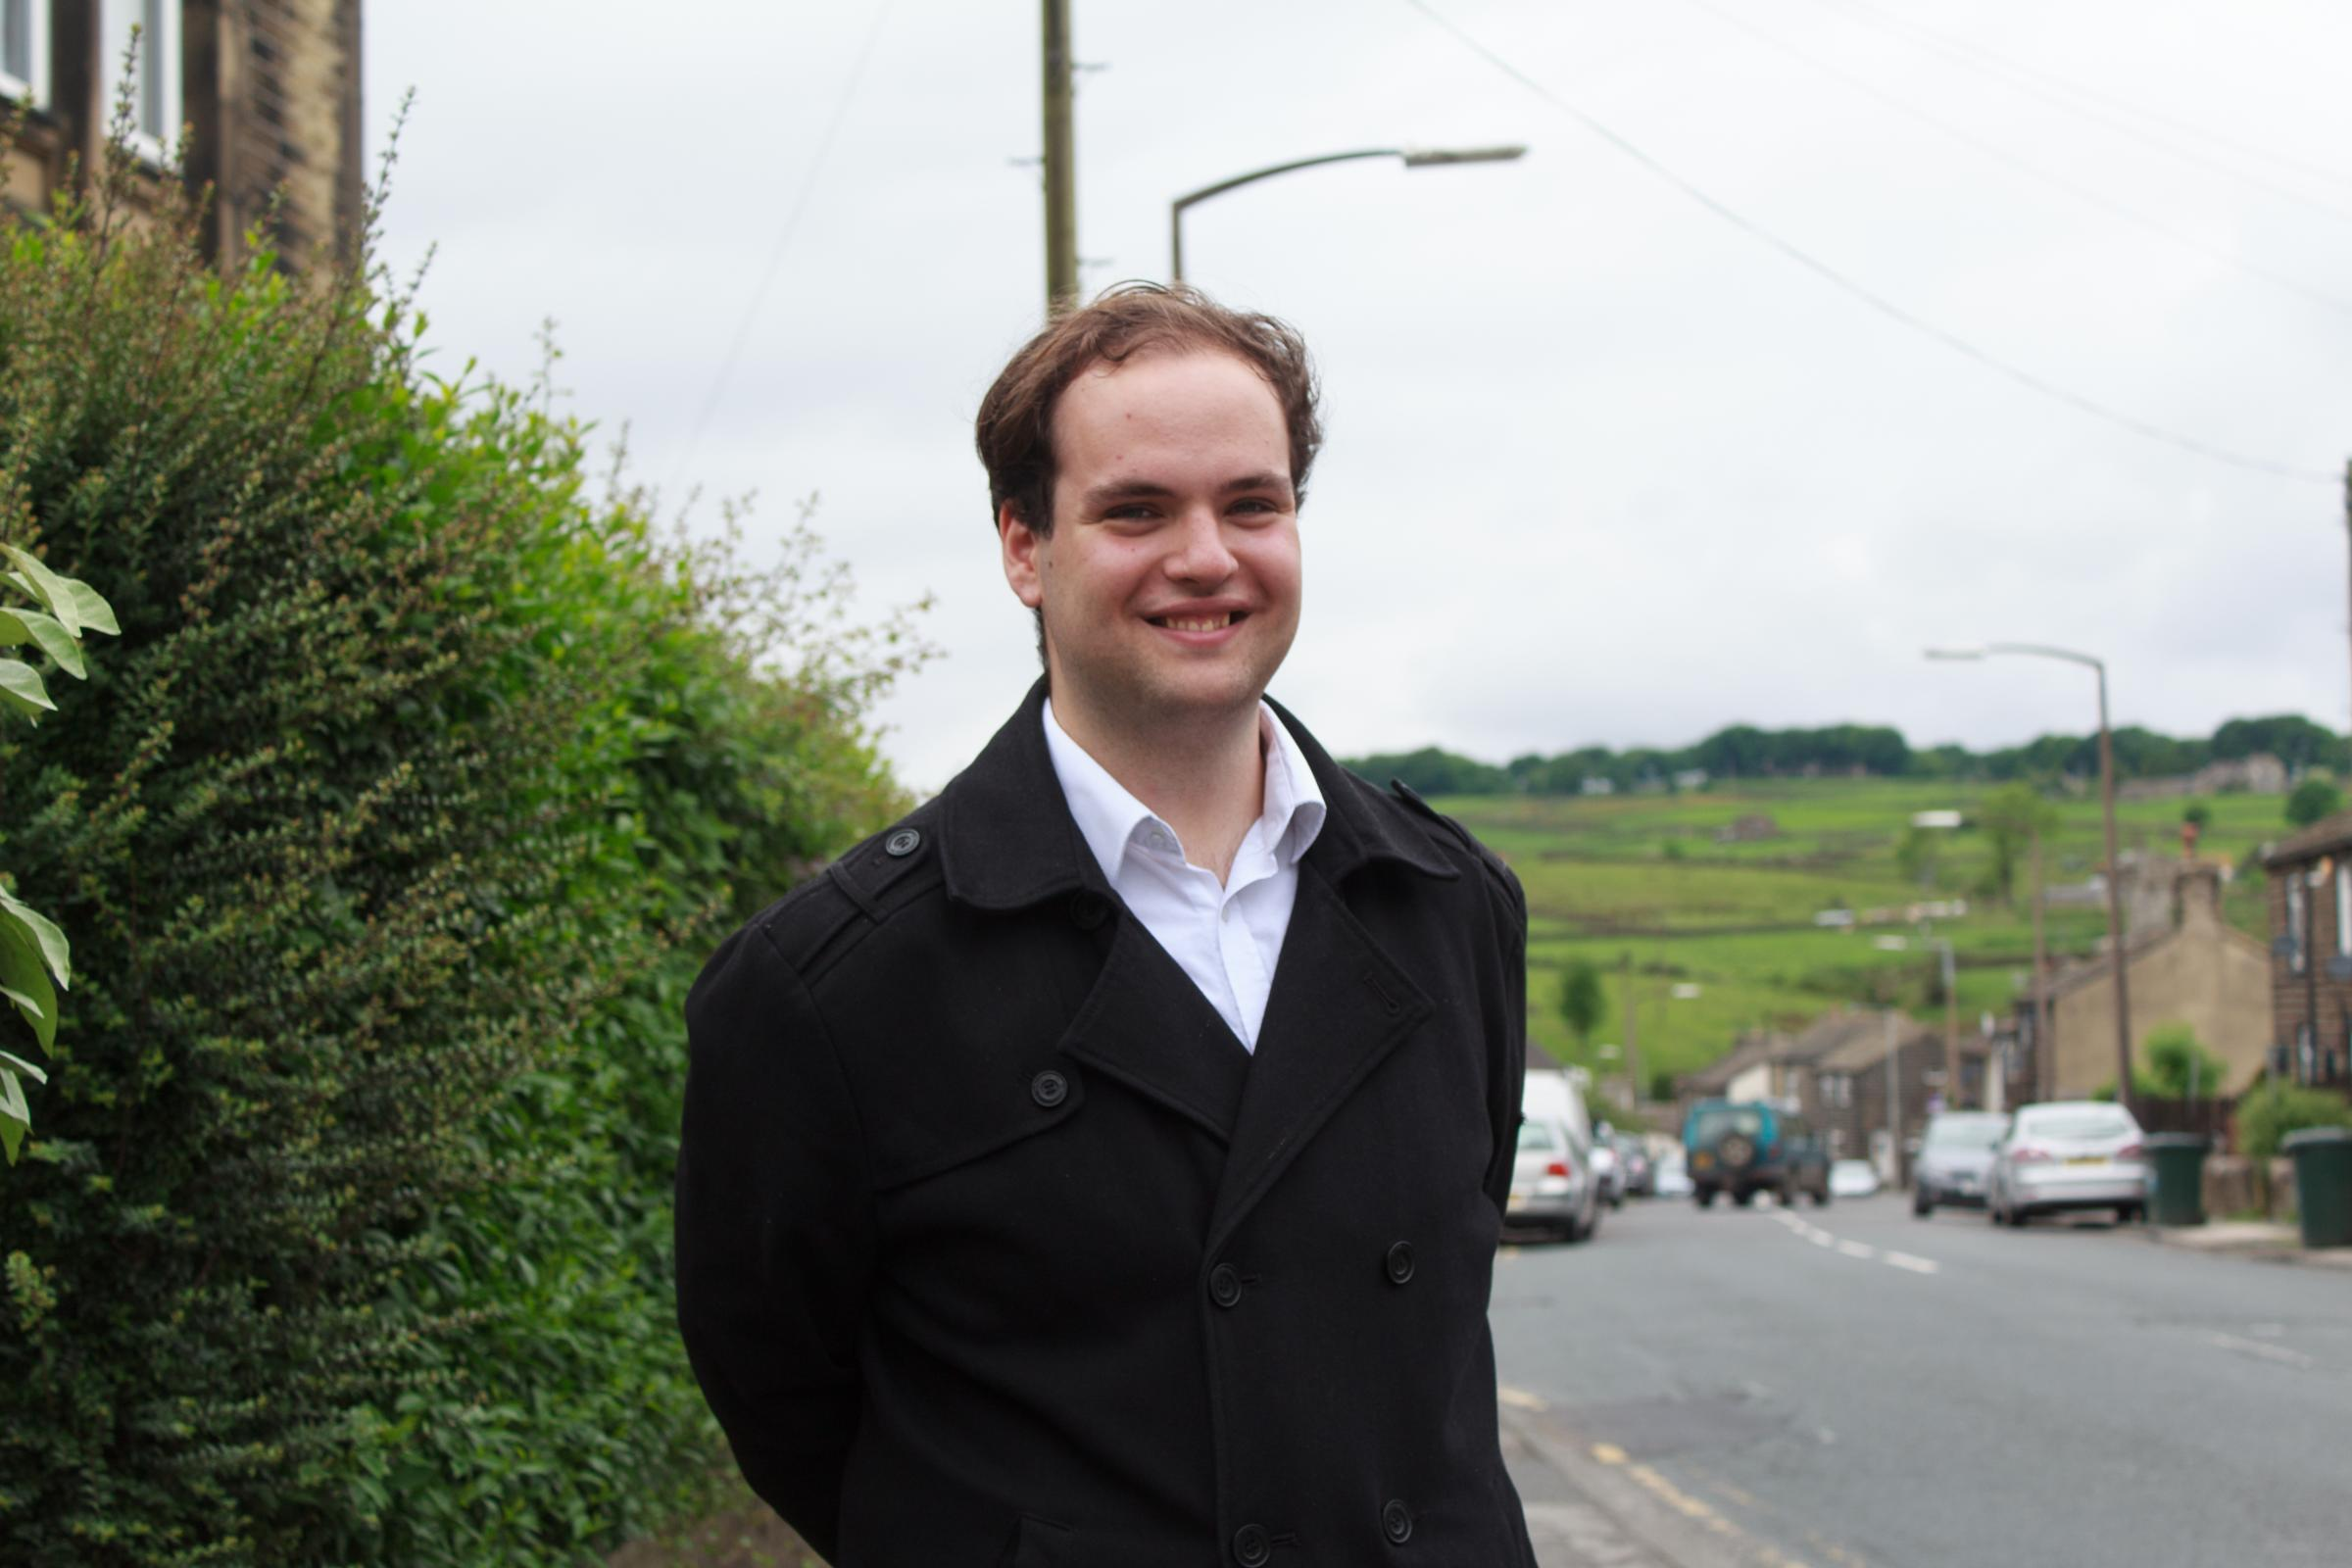 Councillor Luke Maunsell, of Keighley Town Council's Oakworth ward